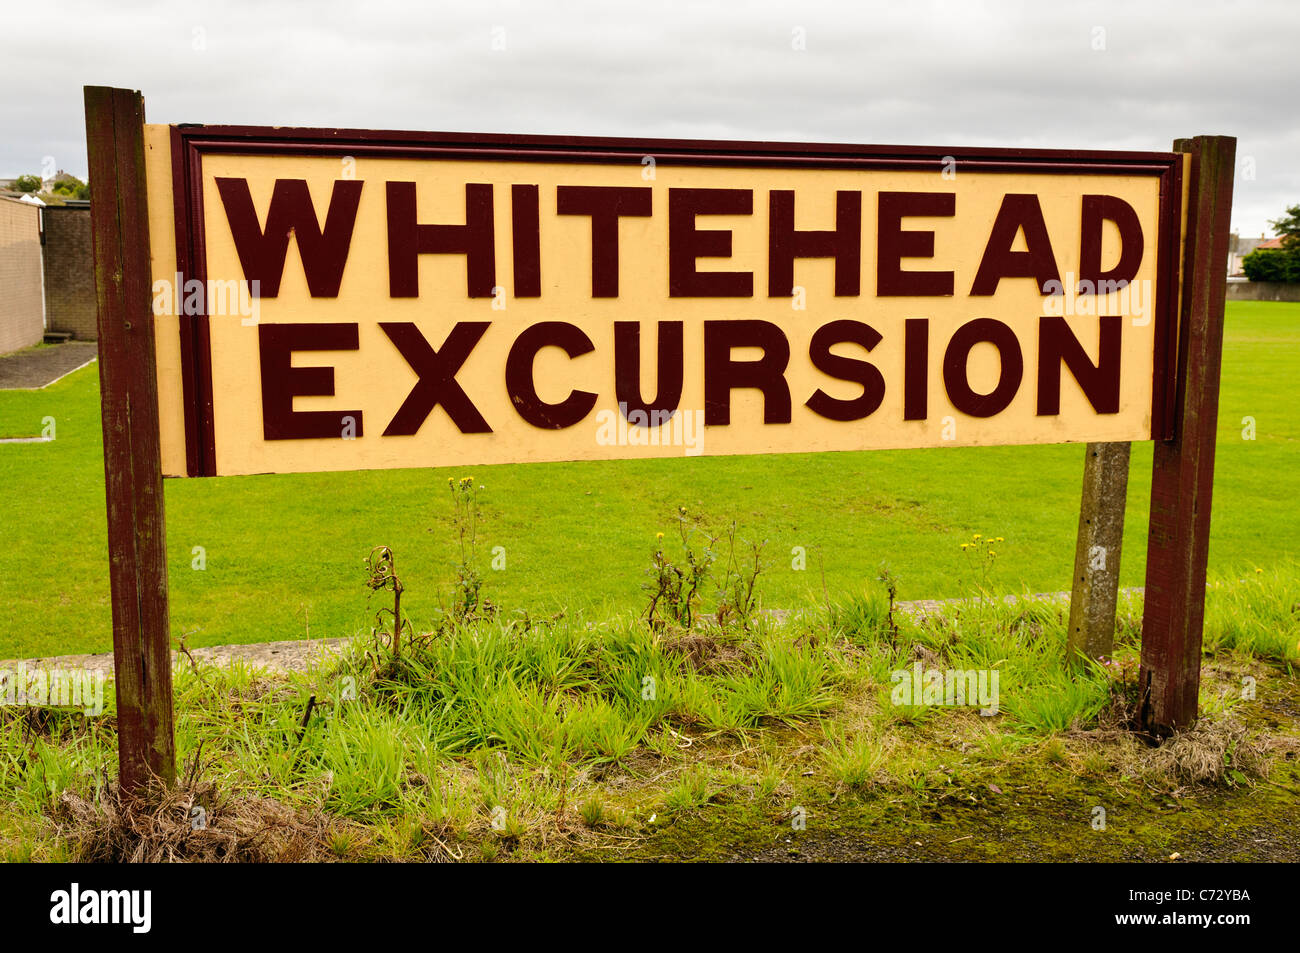 Whitehead Excursion sign at the Railway Preservation Society of Ireland - Stock Image